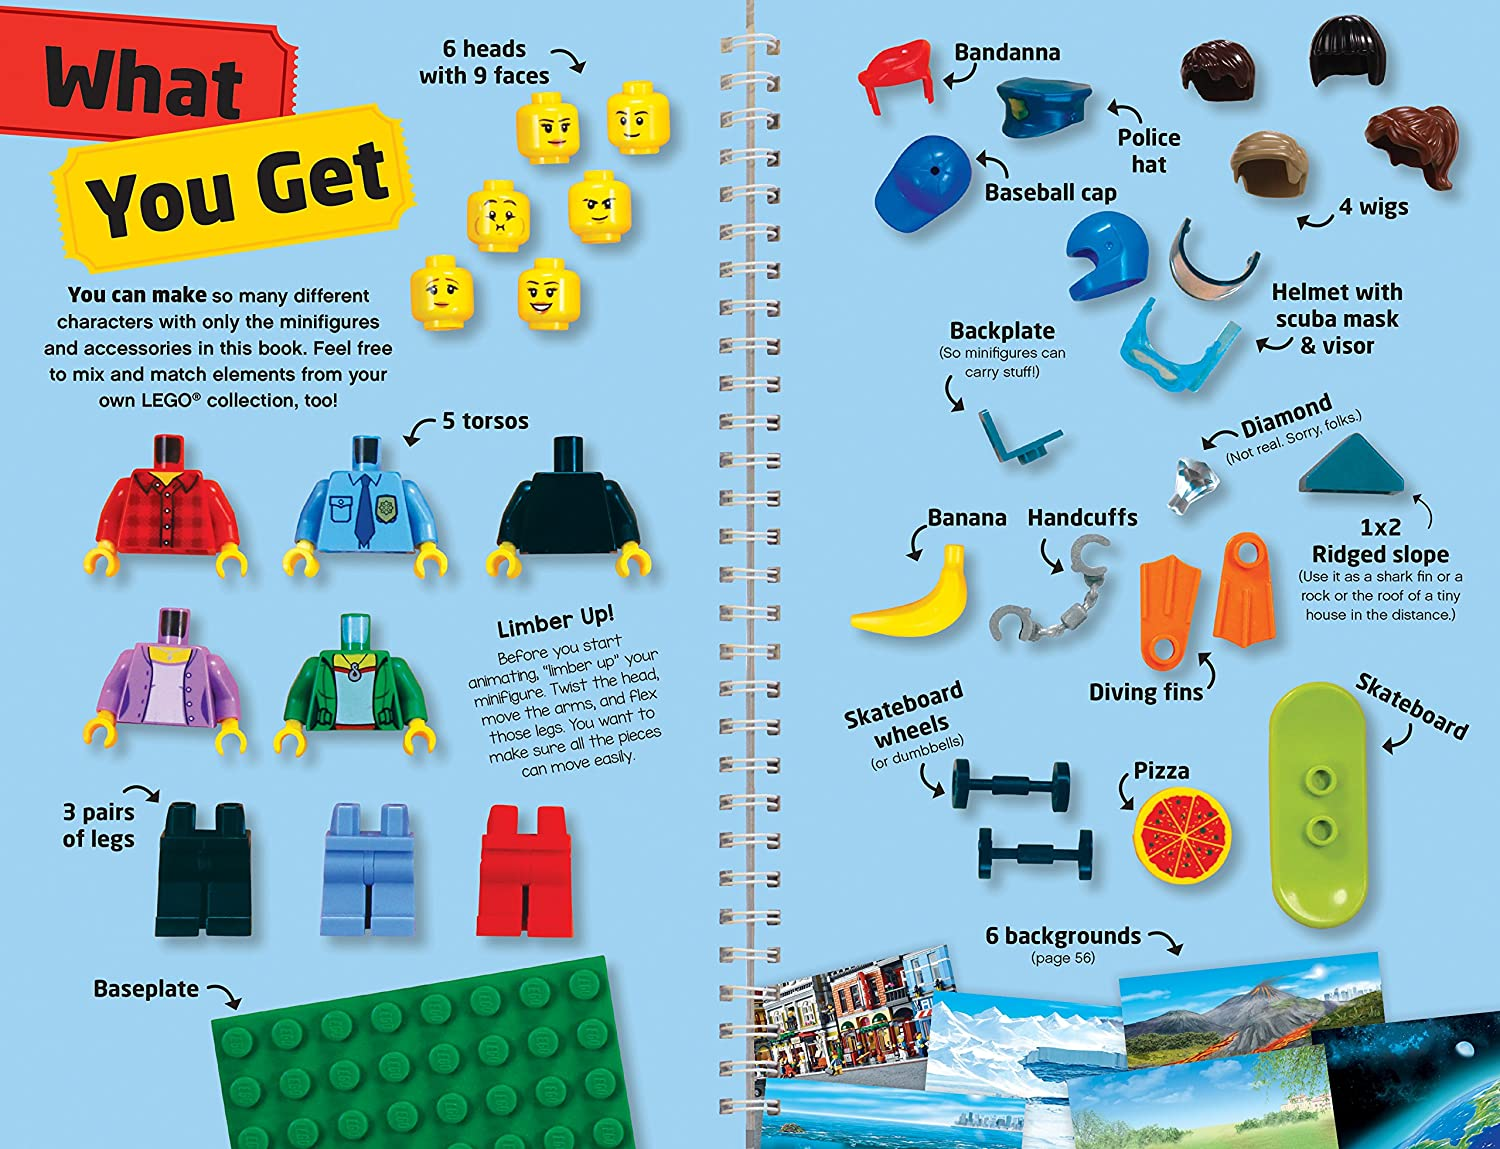 Amazon.com: Klutz Lego Make Your Own Movie Kit: Klutz: Toys & Games